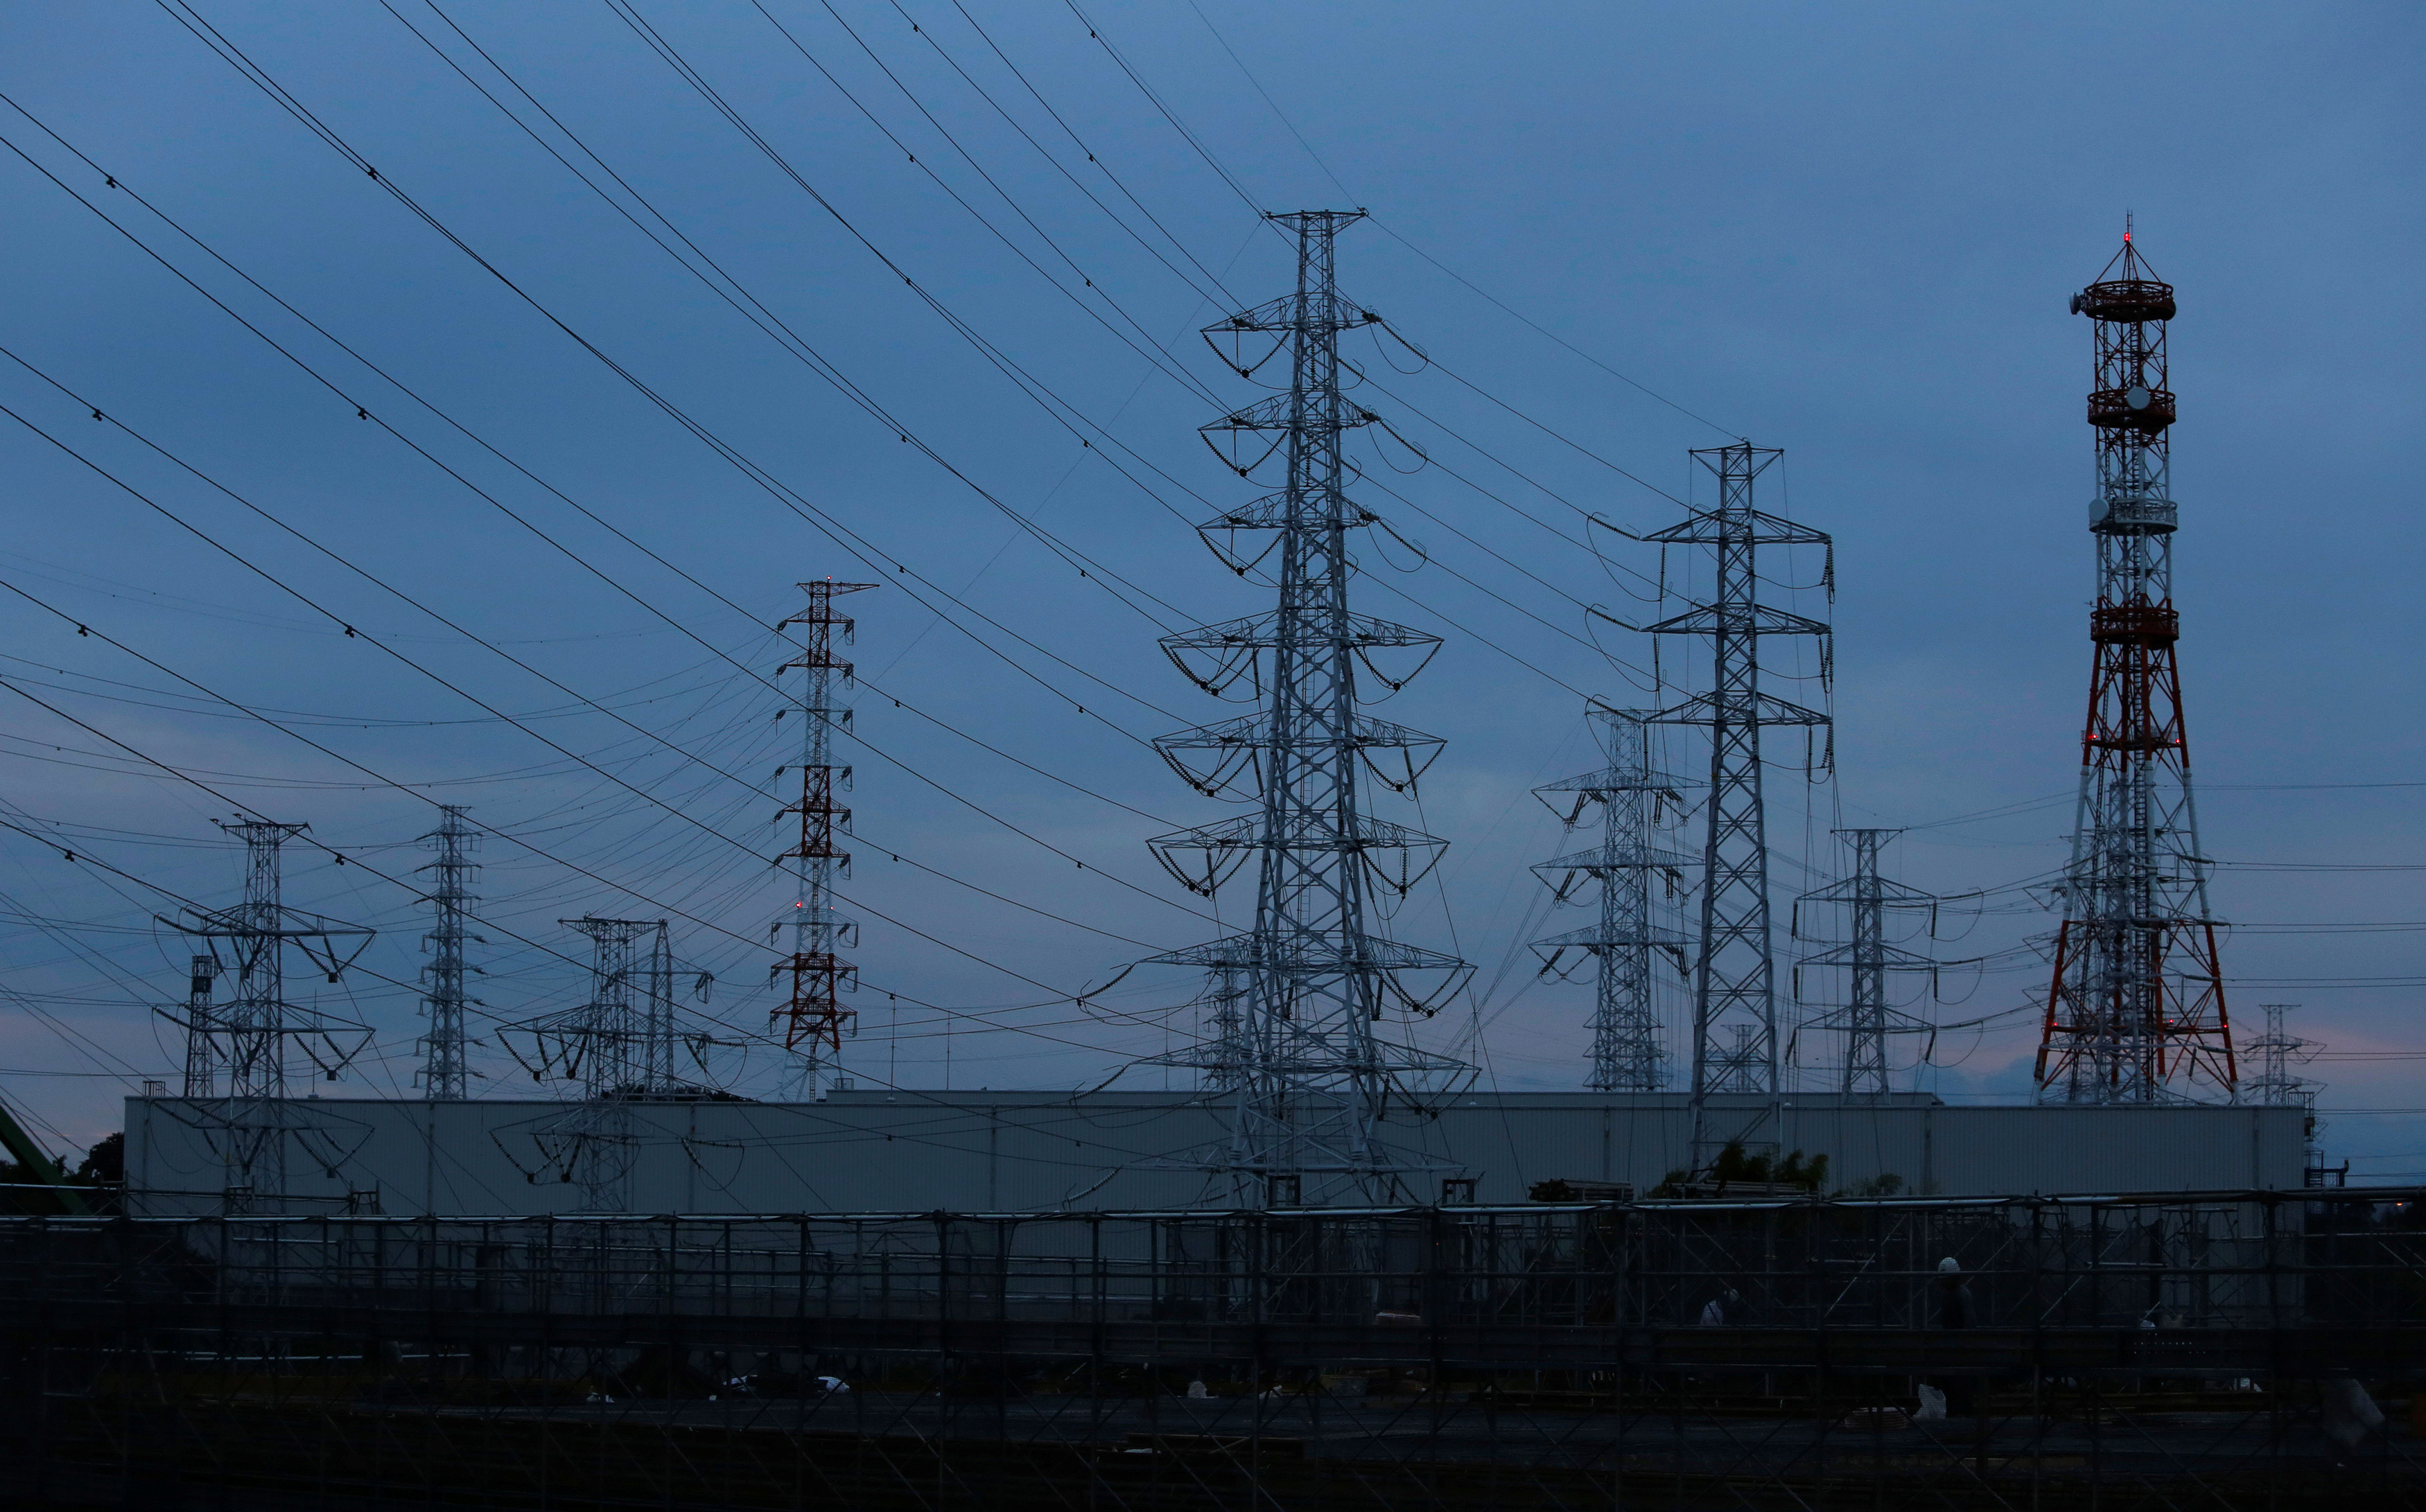 Electric power transmission lines leading to Tokyo Electric Power Co.'s (TEPCO) Kohoku Substation are seen in Yokohama, south of Tokyo, September 15, 2014.REUTERS/Yuya Shino